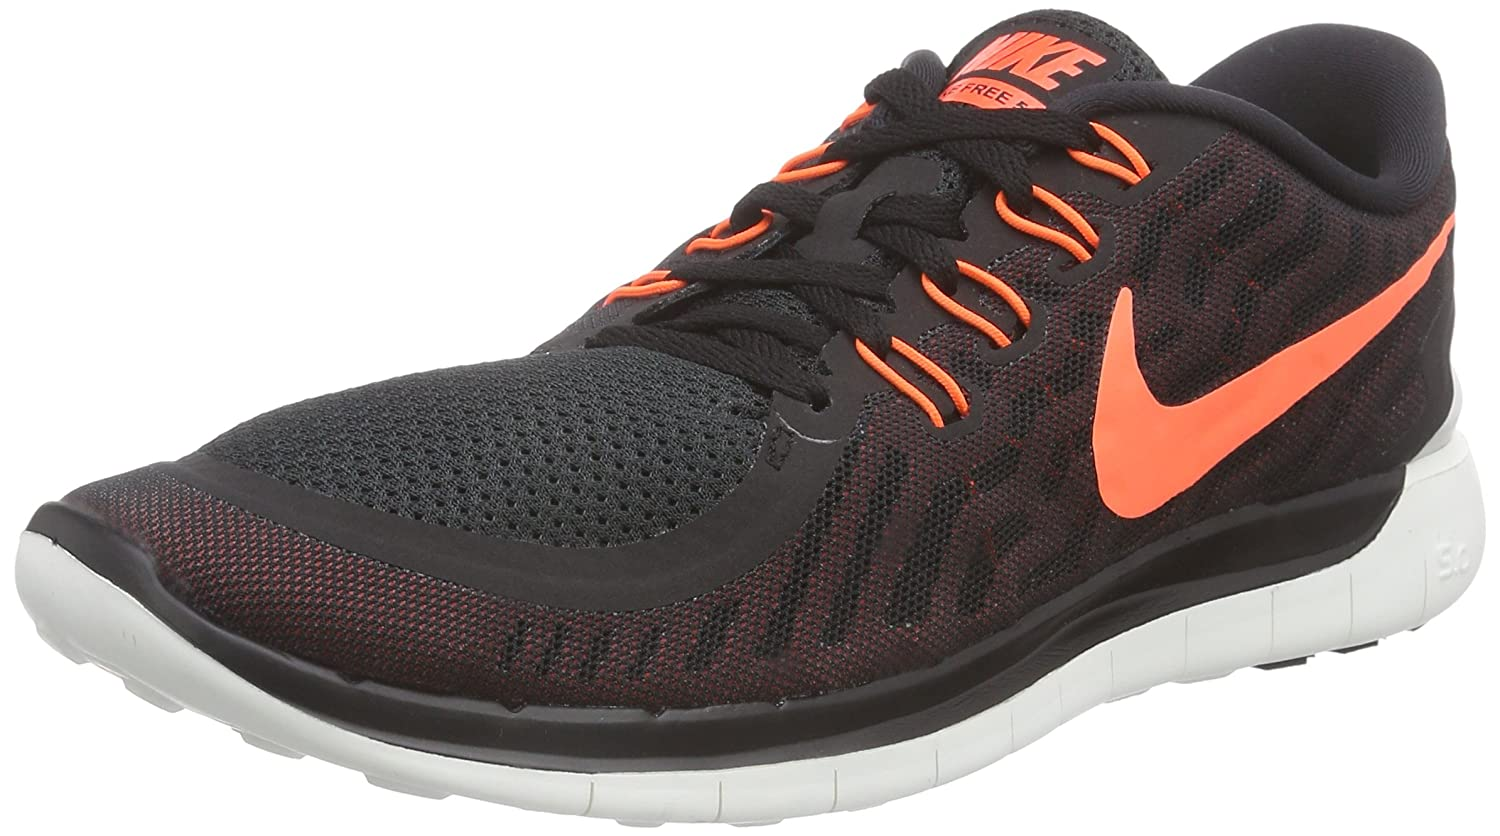 Nike Men's Free 5.0 Running Shoe B00V3SJQ3K 13 D - Medium|Black/University Red/White/Hyper Orange